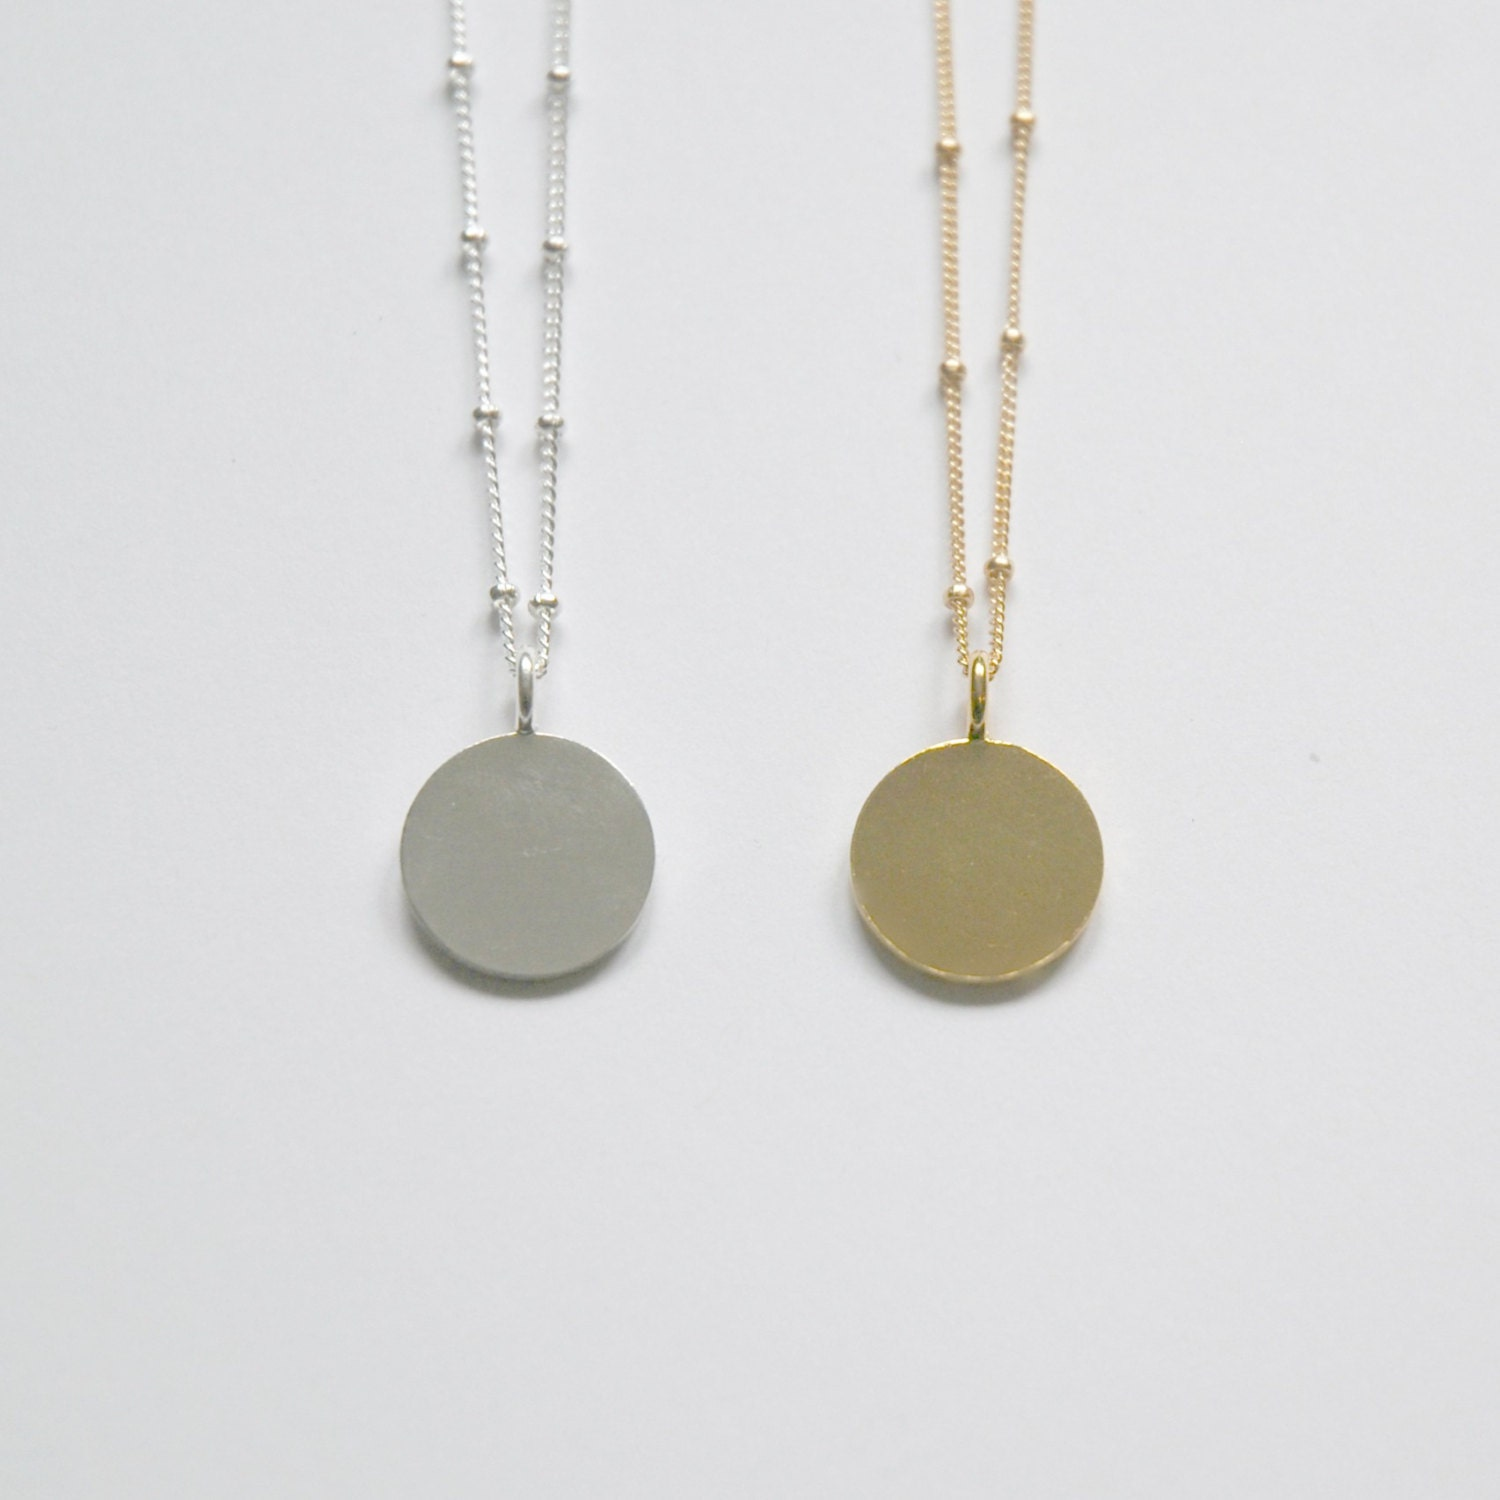 round characters in the necklace Her friend lends her a necklace what makes mathilde loisel a round character in the necklace is sodapop from the outsiders a flat or round character.